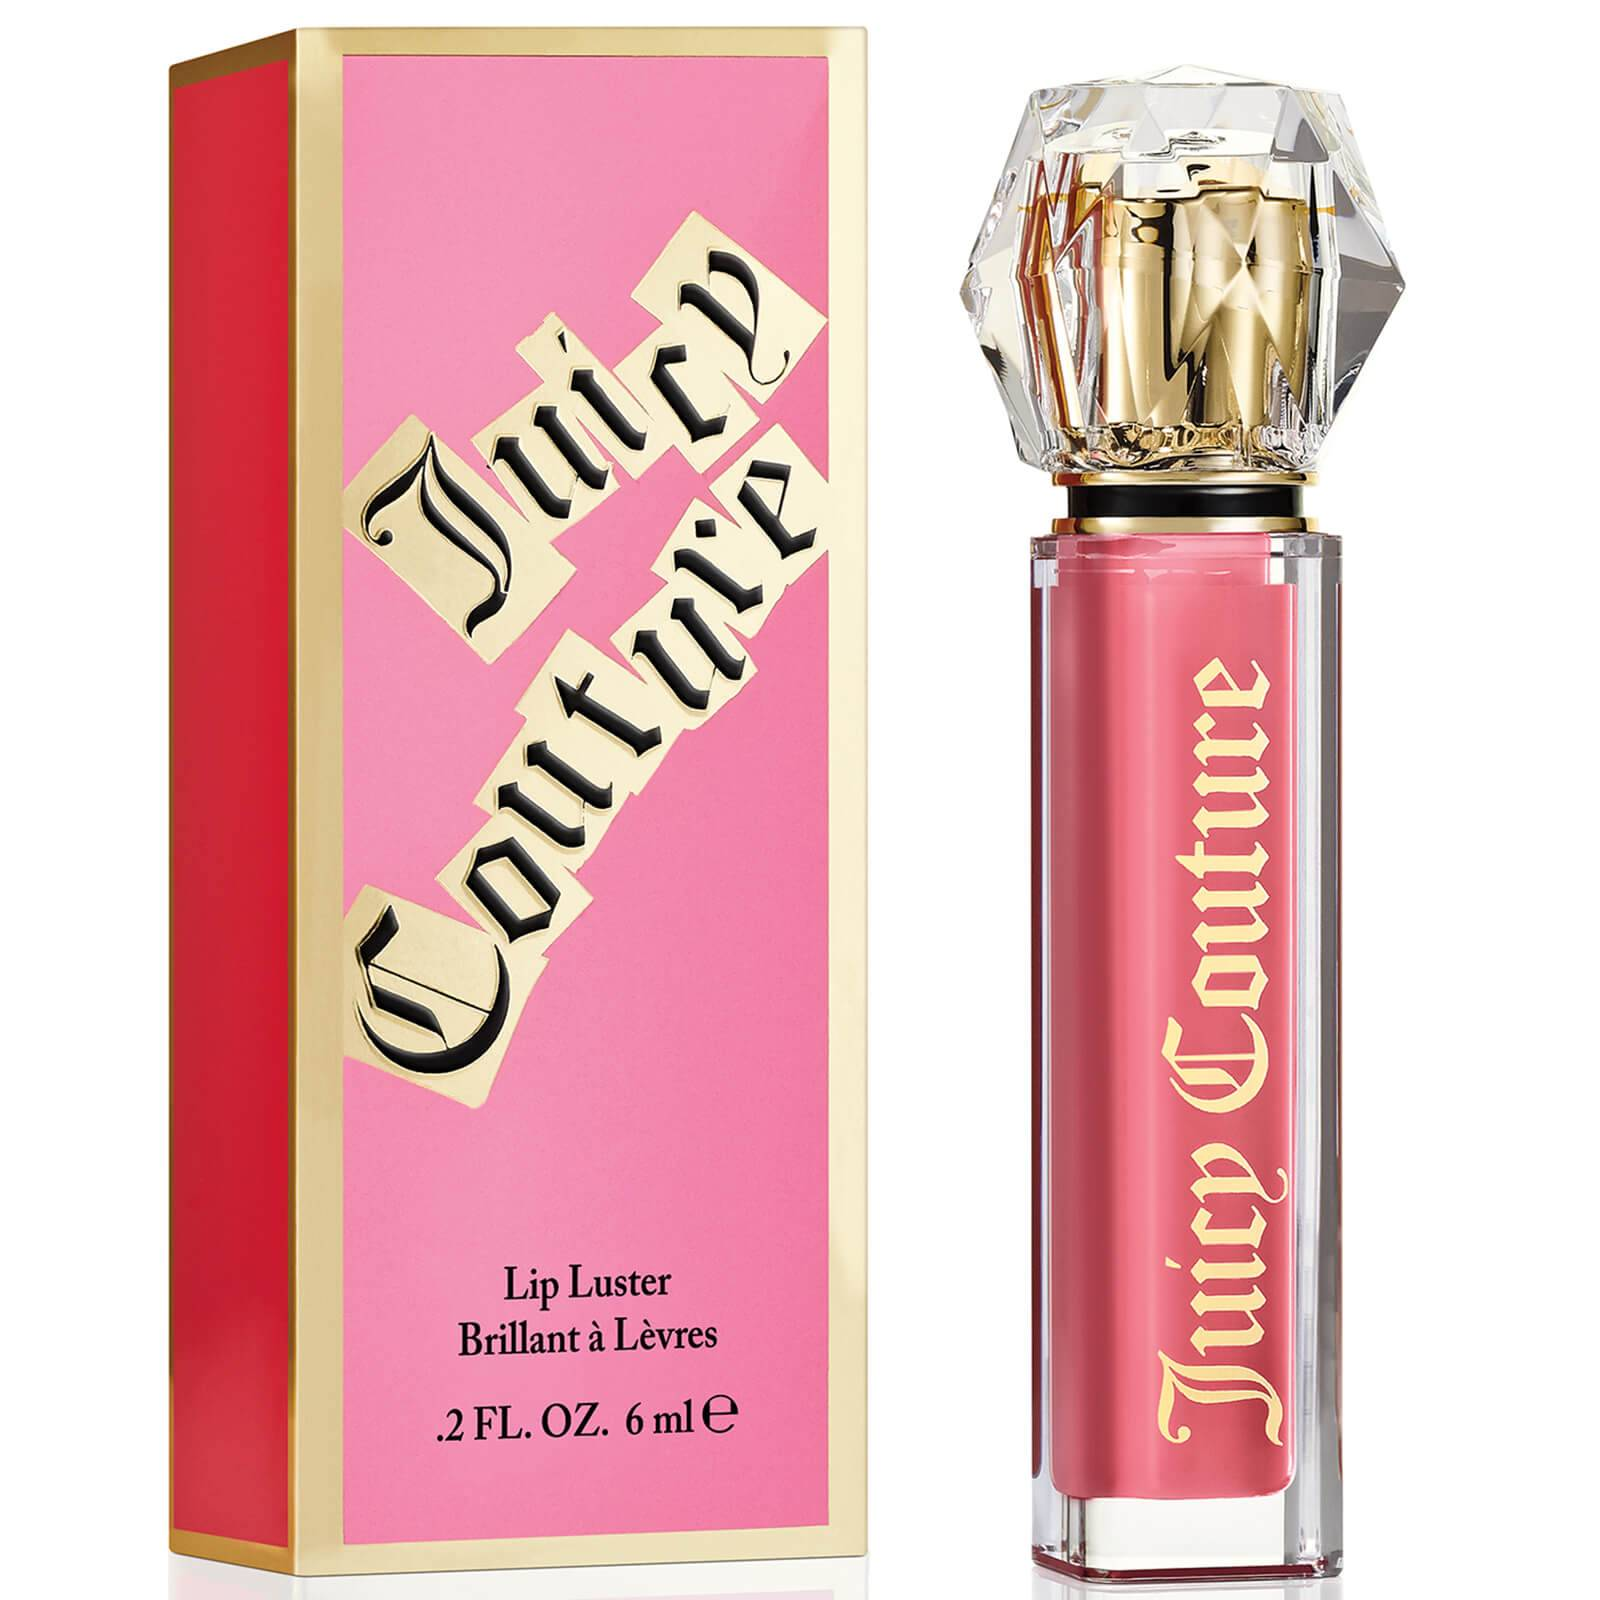 Juicy Couture Lip Luster lipgloss - 6 ml (varie tonalità) - Boy Magnet